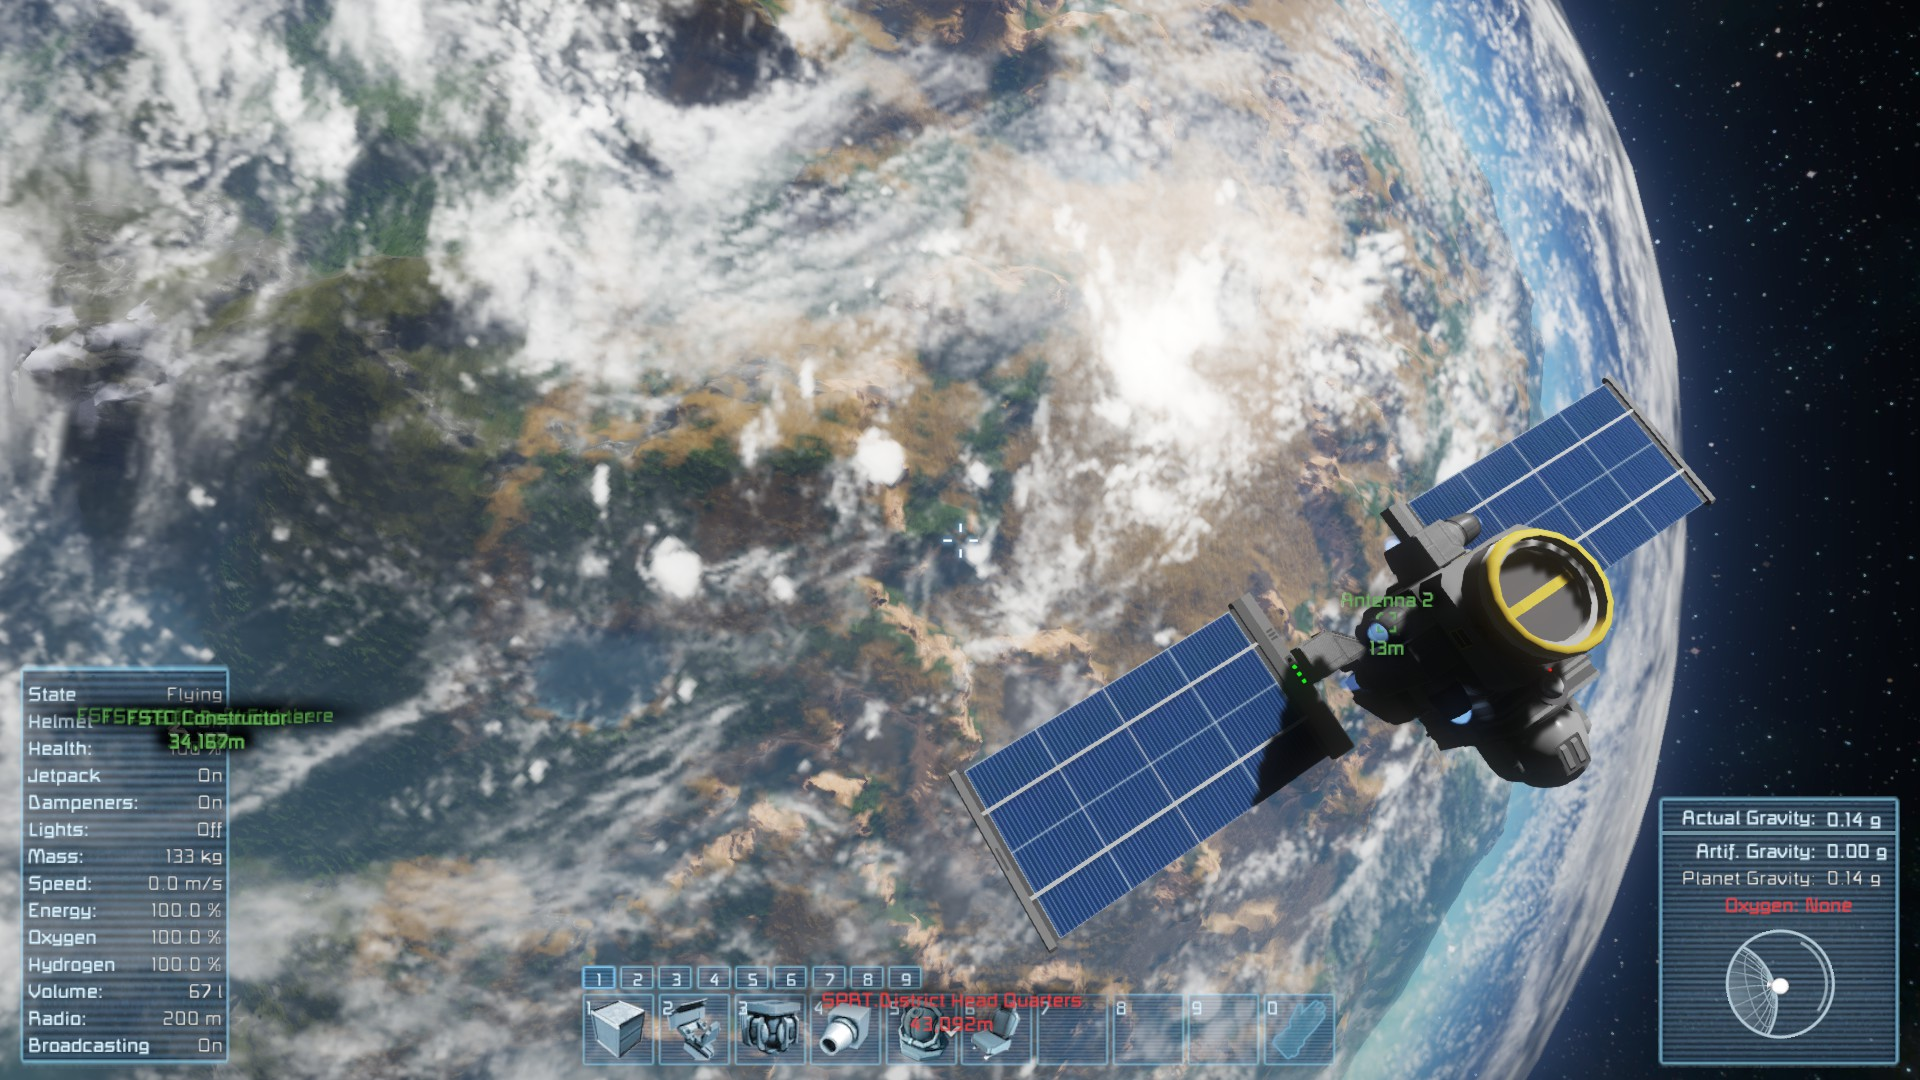 Unmanned Satellite Launch From Earth Keen Software House Forums - Actual satellite images